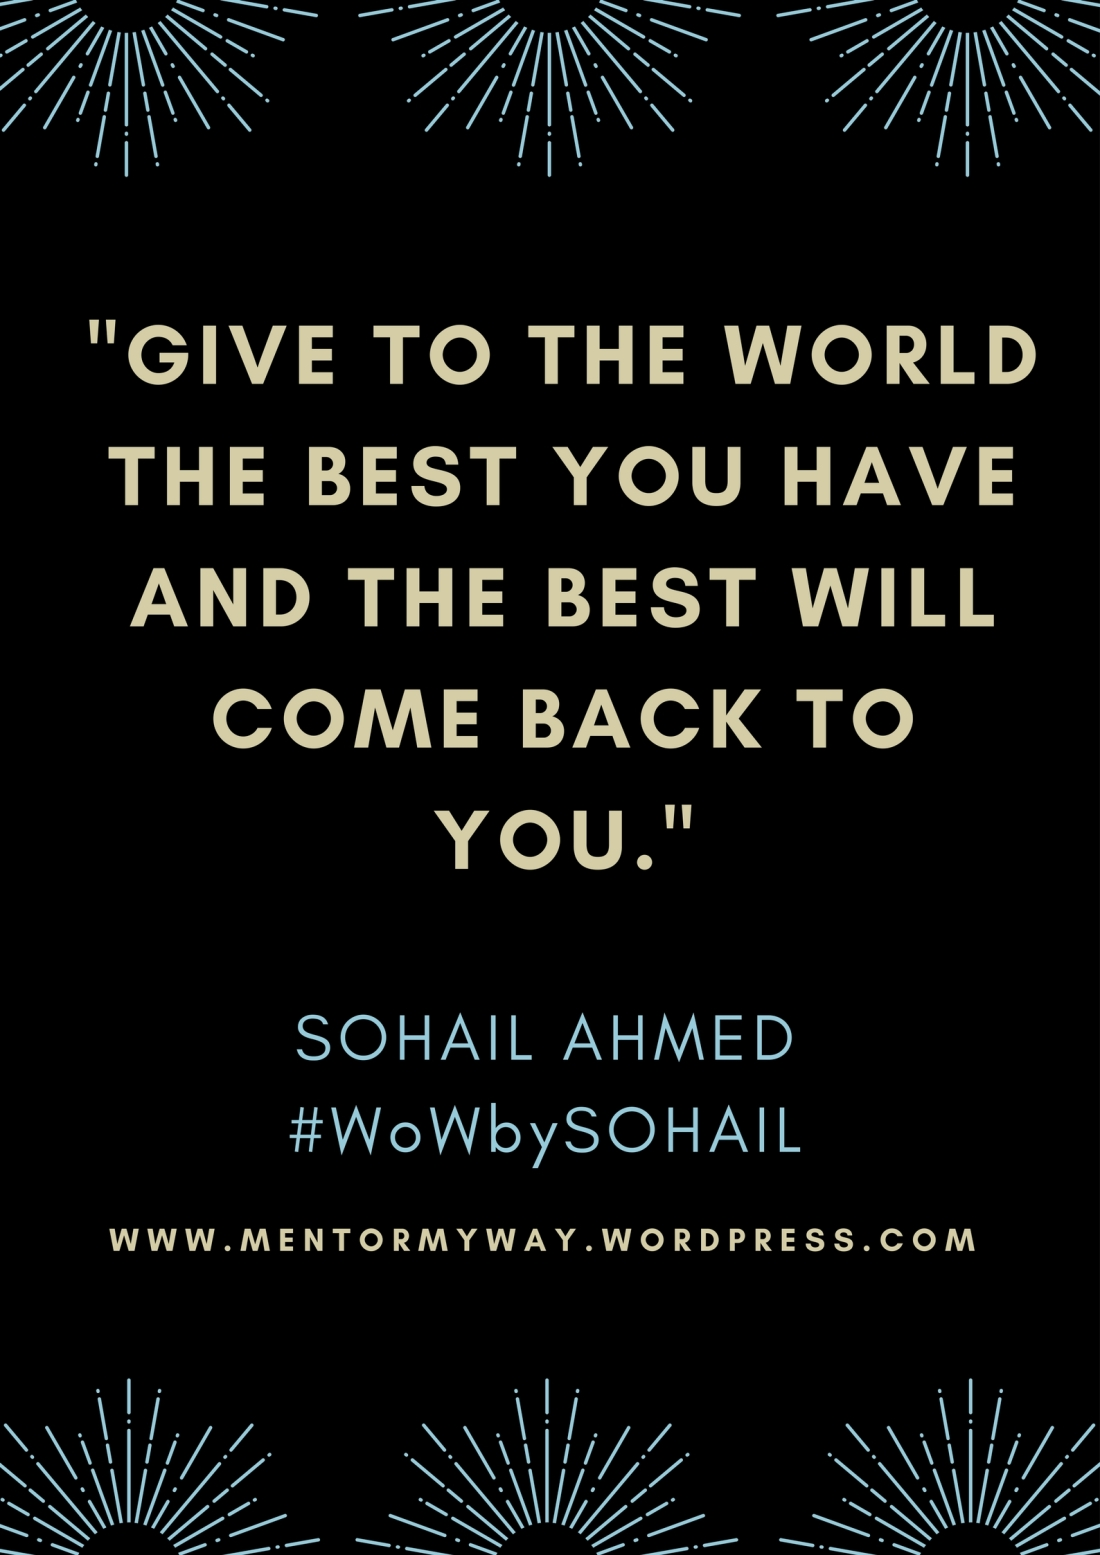 -GIVE TO THE WORLD THE BEST YOU HAVE AND THE BEST WILL COME BACK TO YOU.-